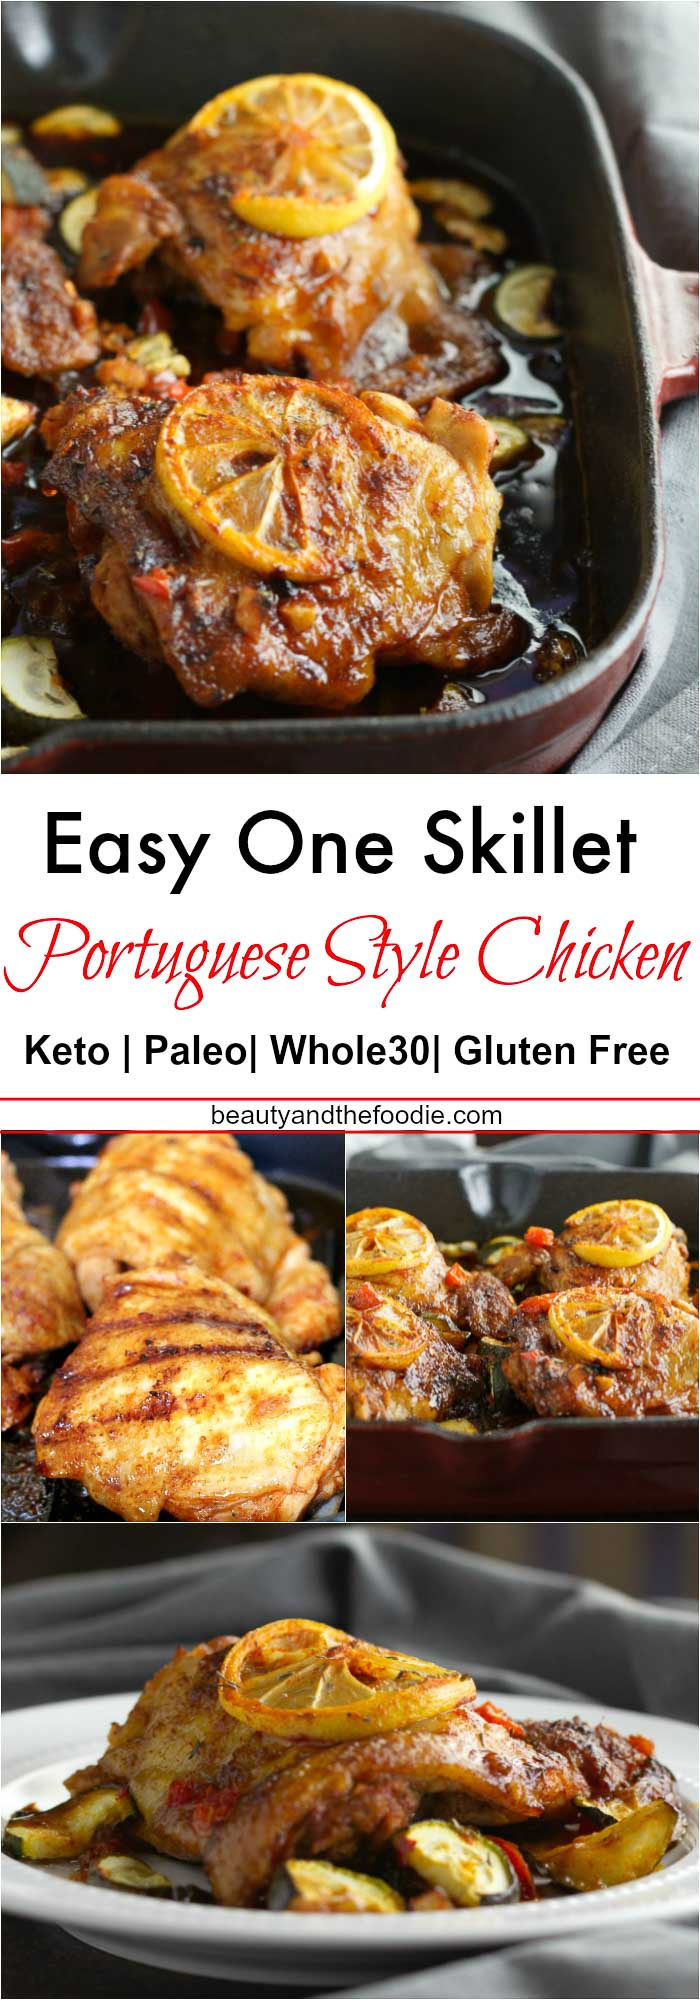 One Skillet Keto Portuguese Style Chicken- low carb, paleo and Whole30.